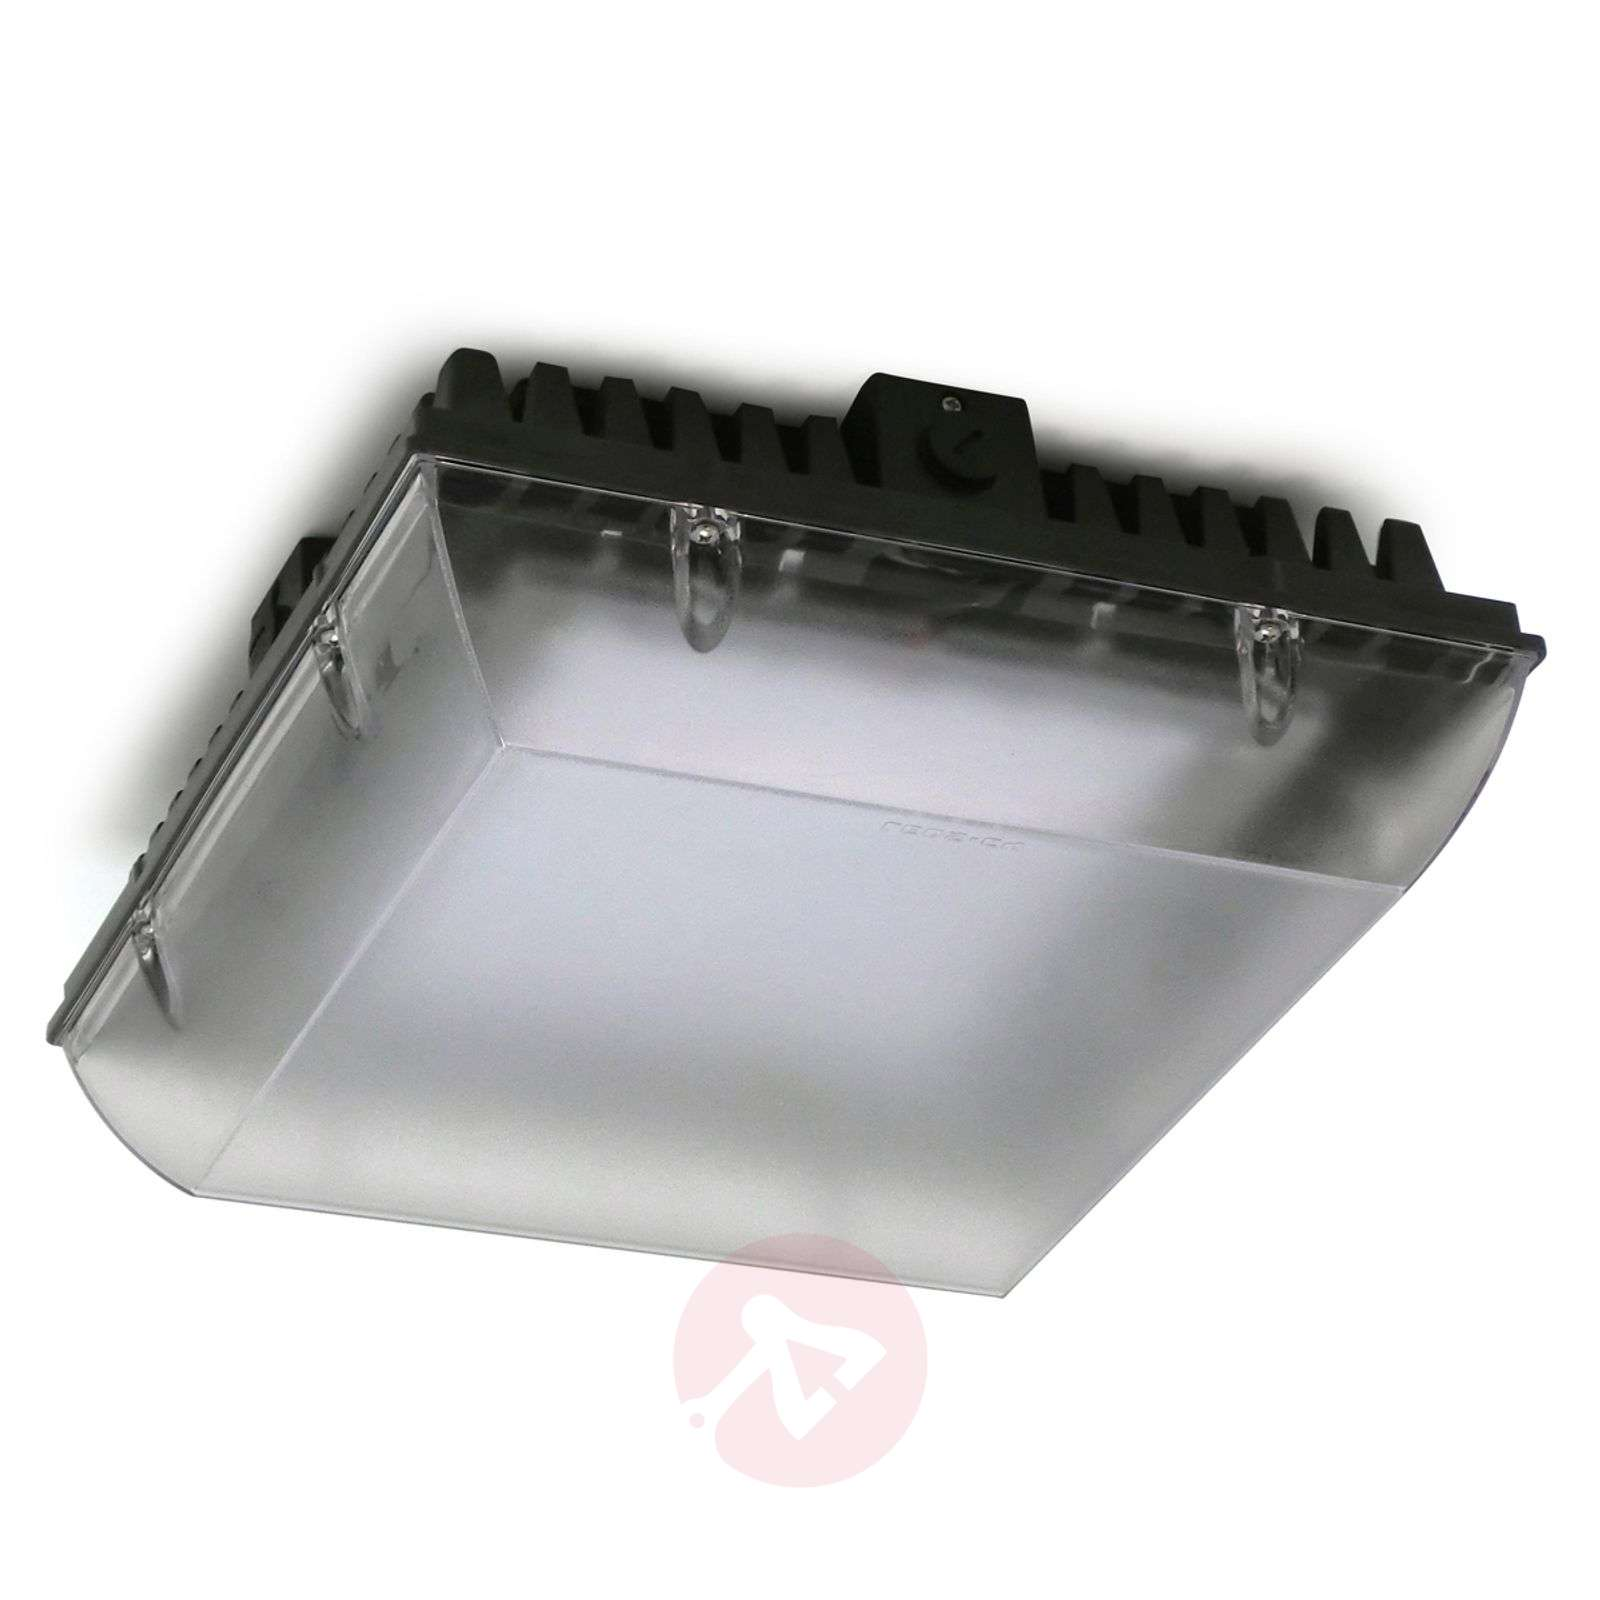 Plafoniere Garage Led : Acquista plafoniera led da esterni resistente premium lampade.it